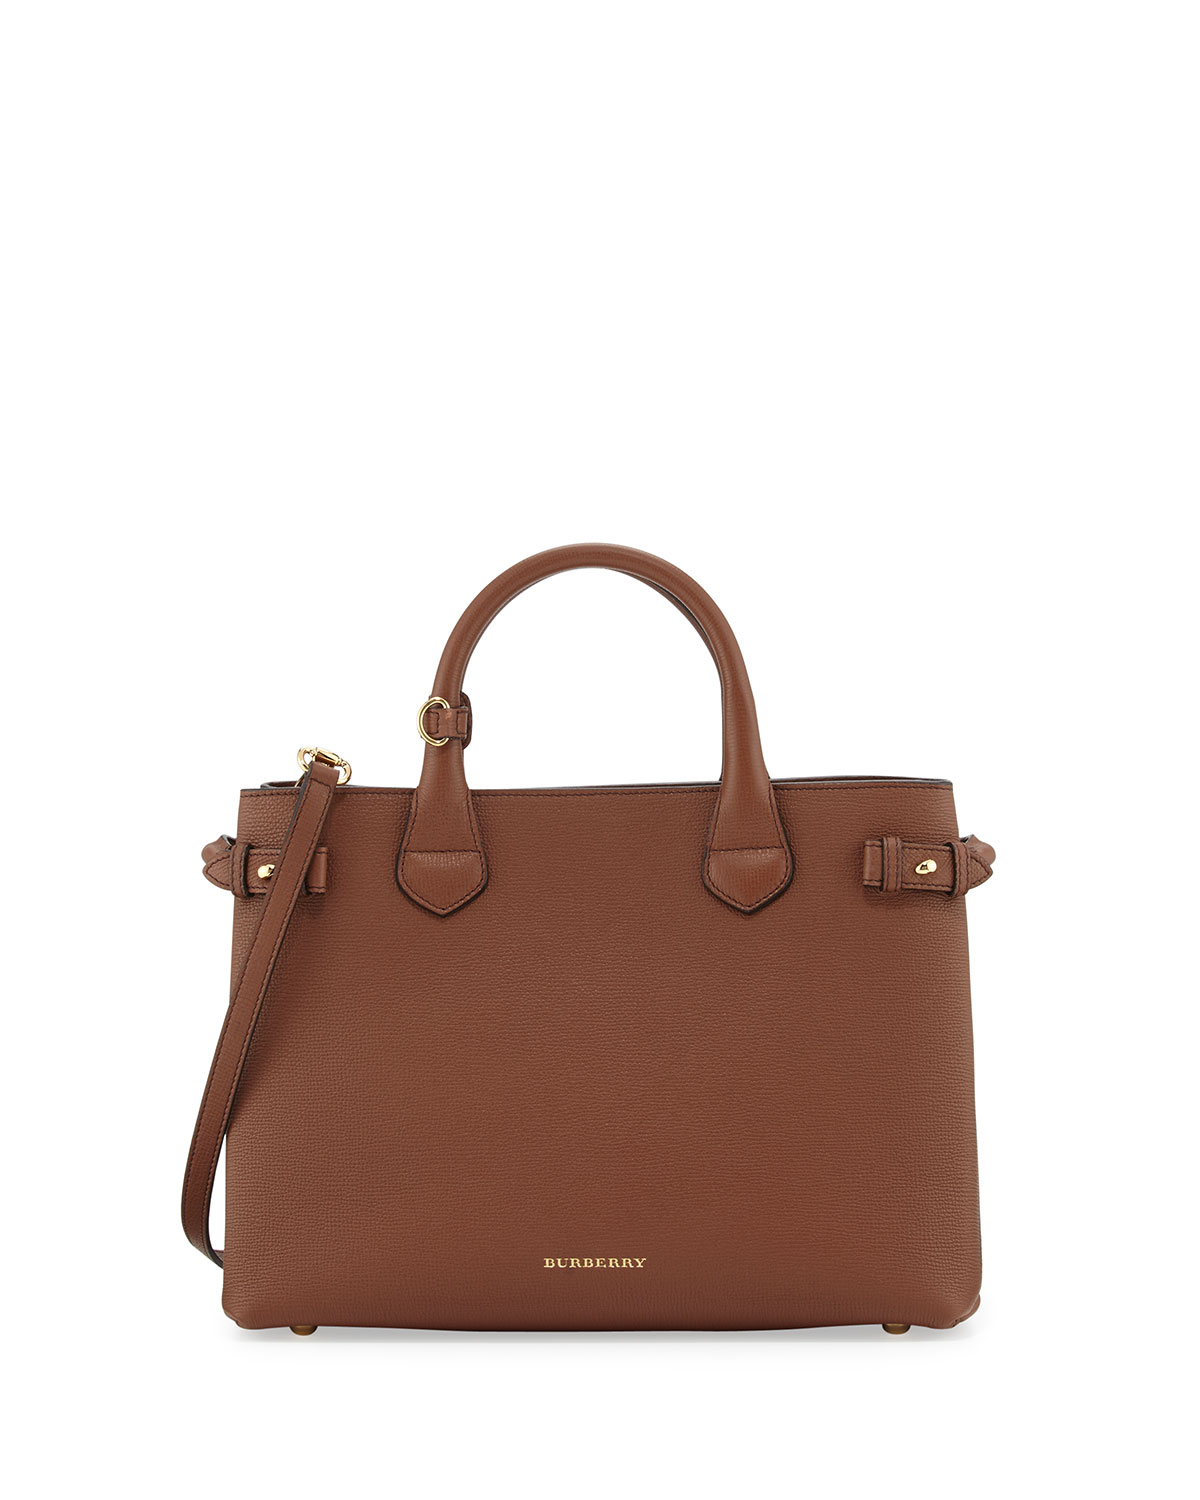 09cdc37931 Burberry Banner Medium House Check Derby Tote Bag, Tan | Neiman Marcus